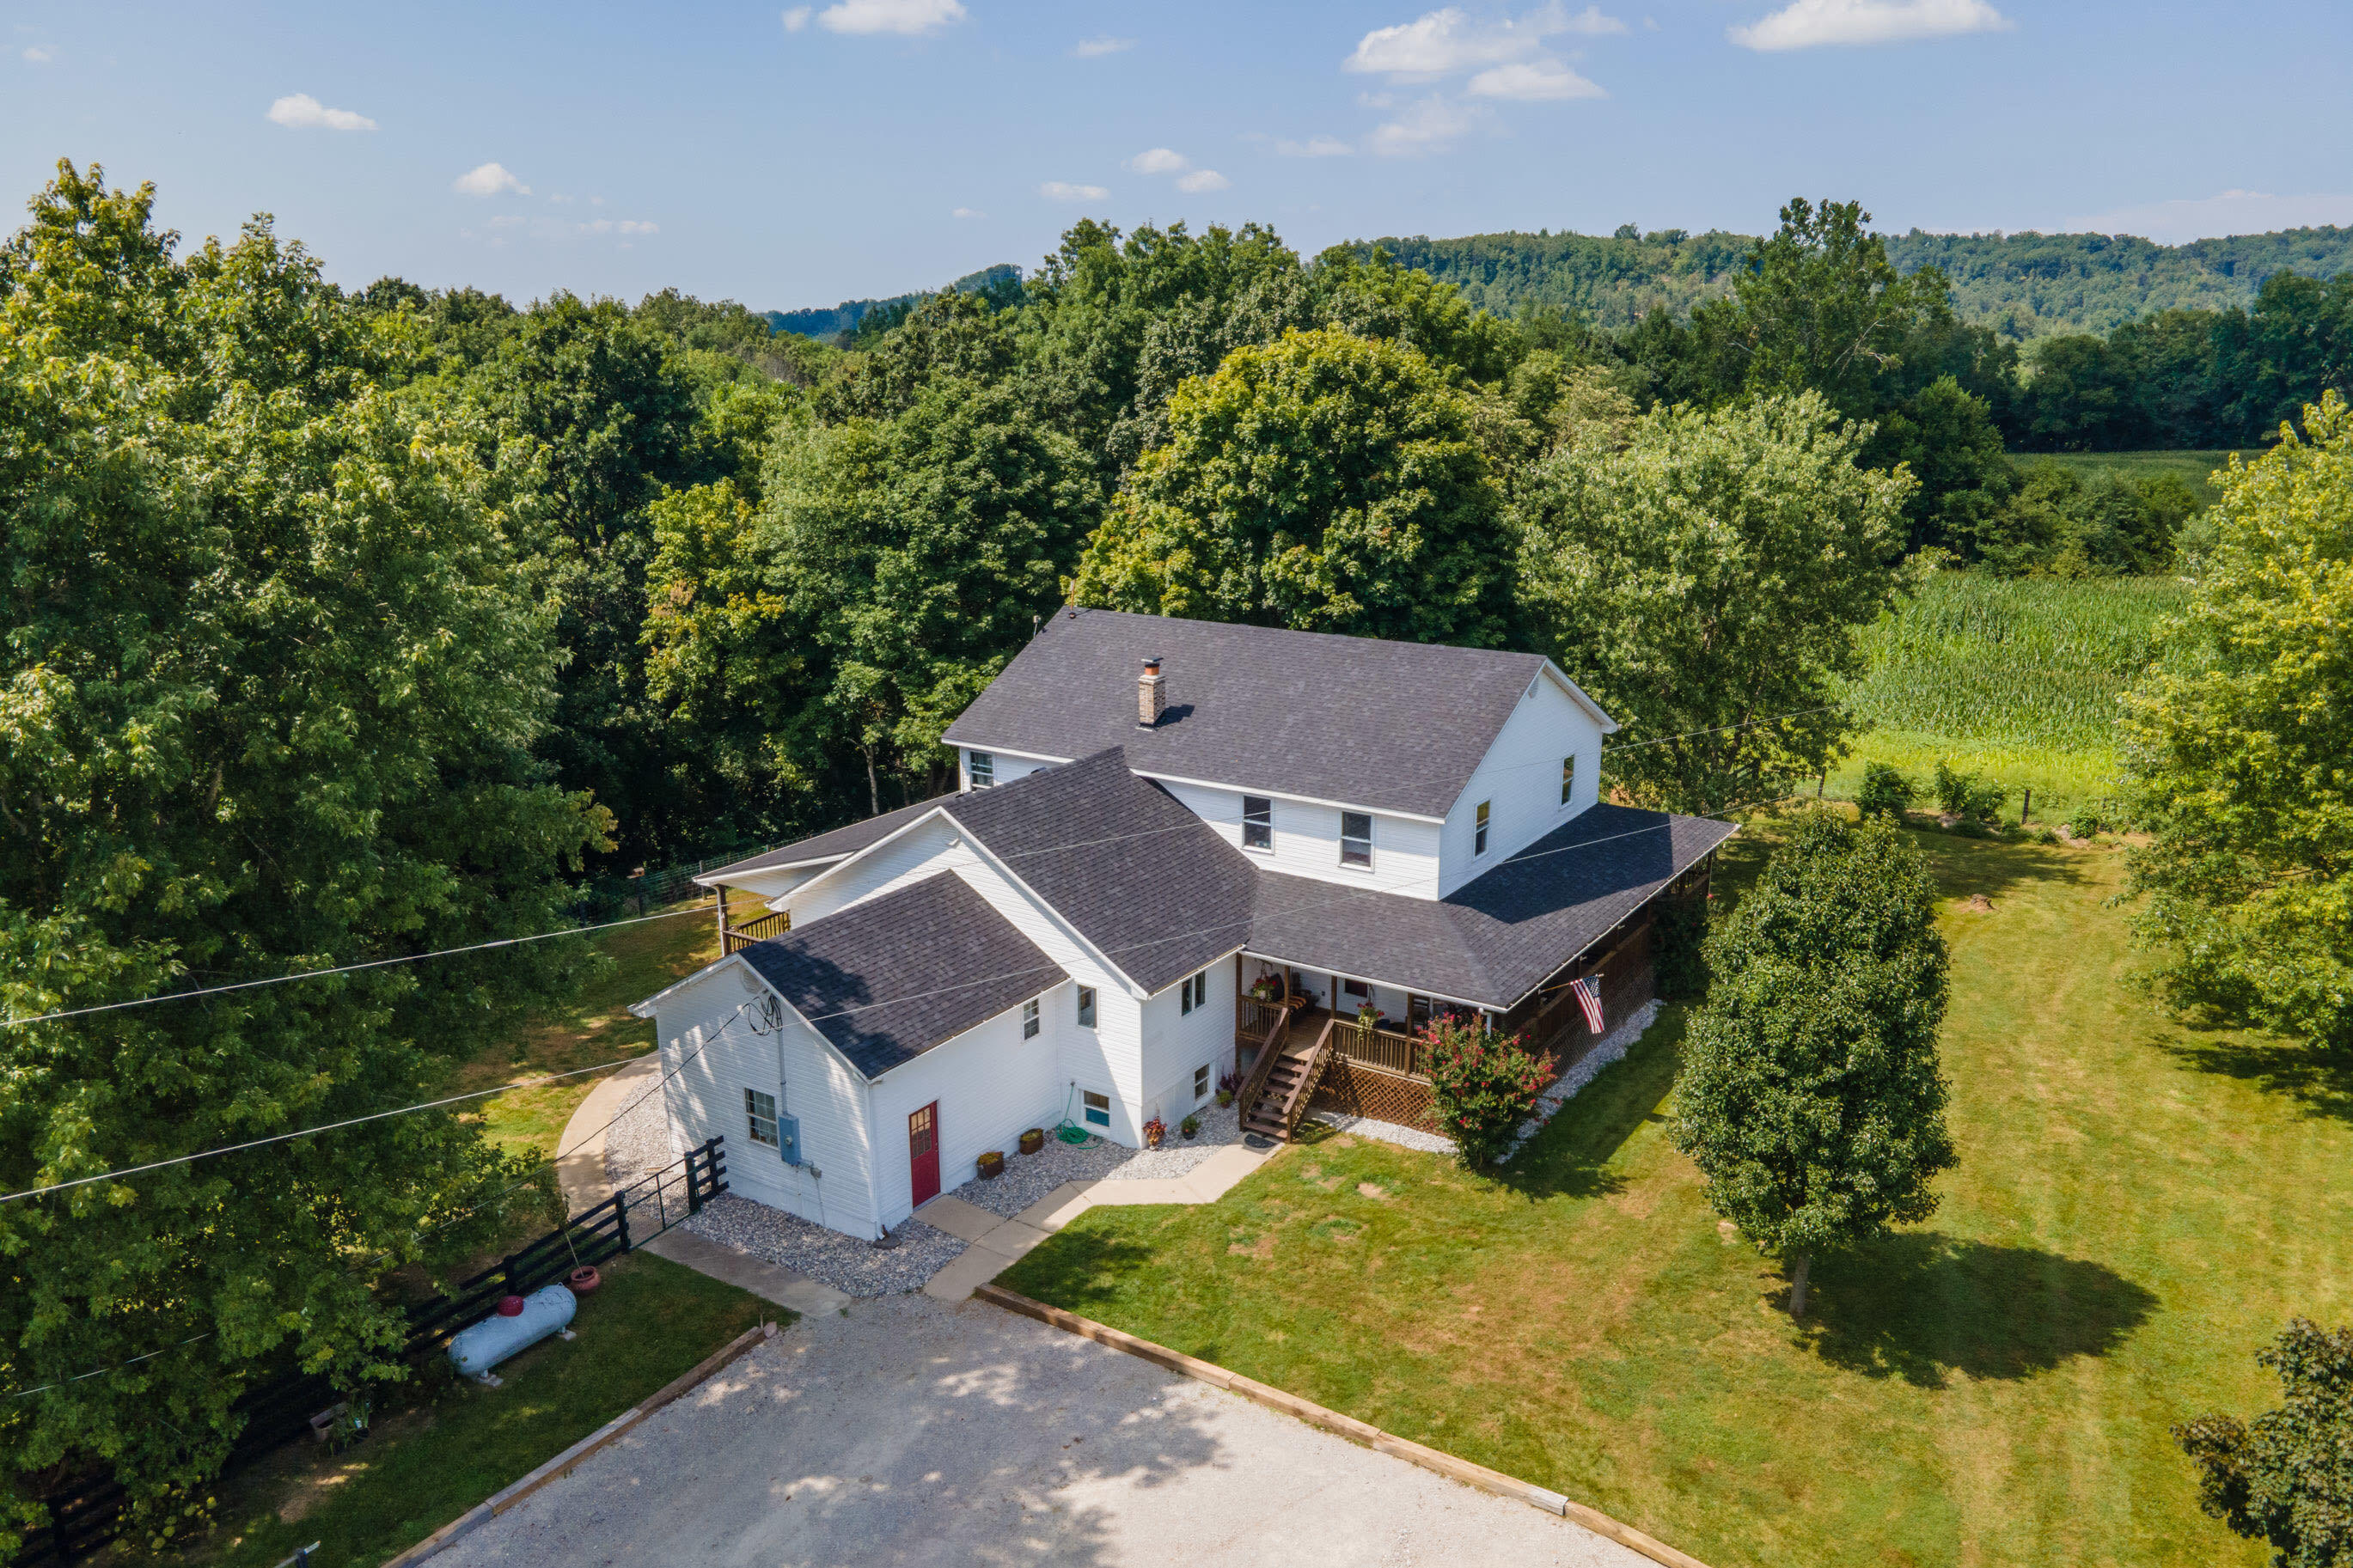 2642 KY 3246 Highway, Crab Orchard, Kentucky 40419, 7 Bedrooms Bedrooms, ,3 BathroomsBathrooms,Residential,For Sale,KY 3246,20119207